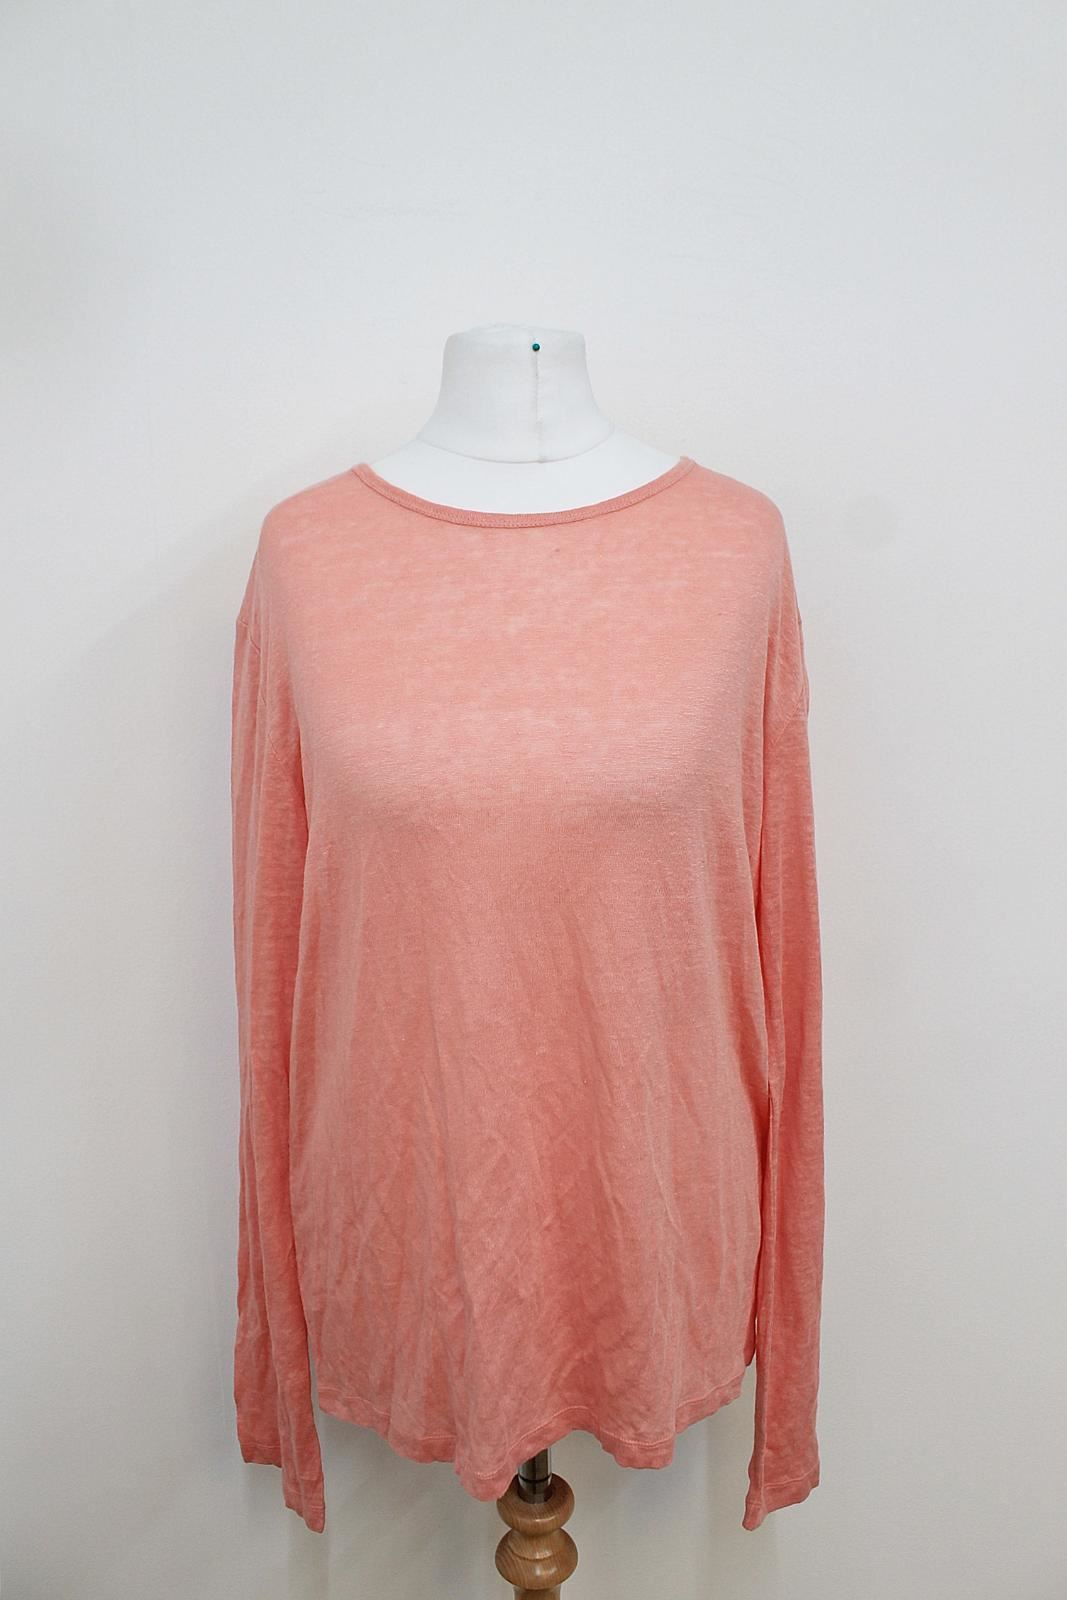 BNWT ALEXANDER WANG Ladies Salmon Rosa Long Sleeved Linen Silk Blend Top S